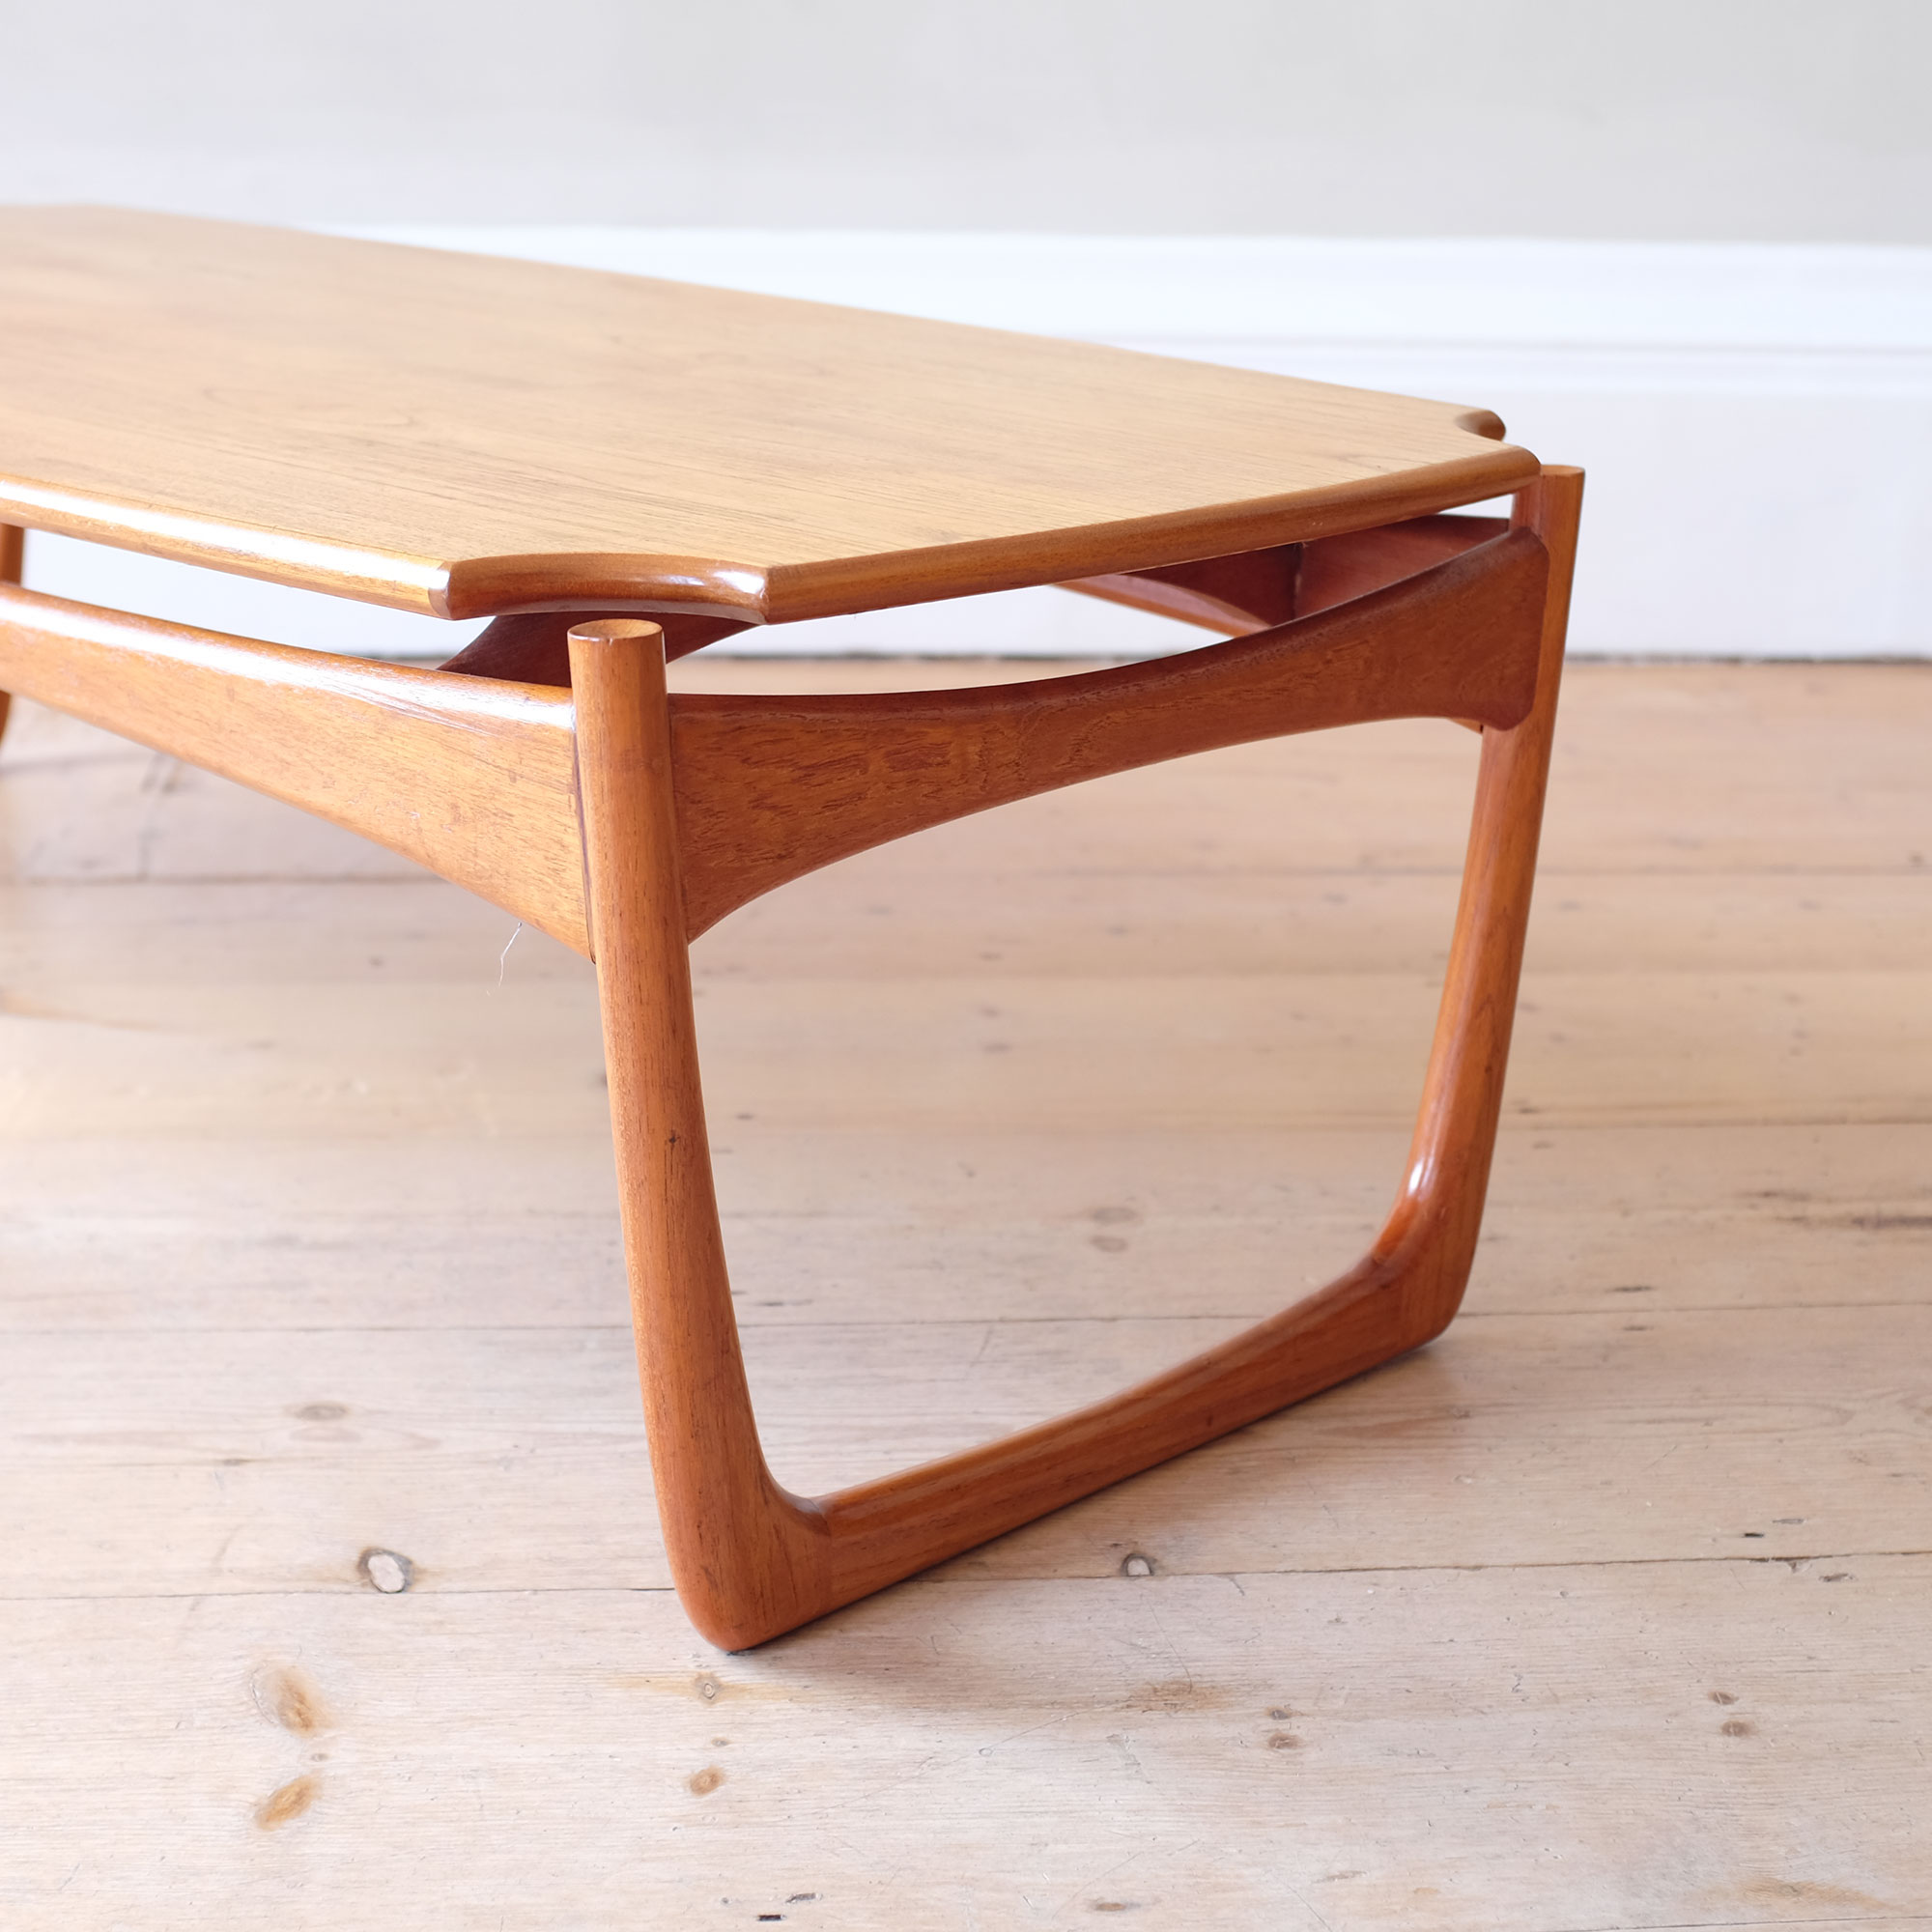 Large-Vintage-Wooden-Coffee-Table-iii